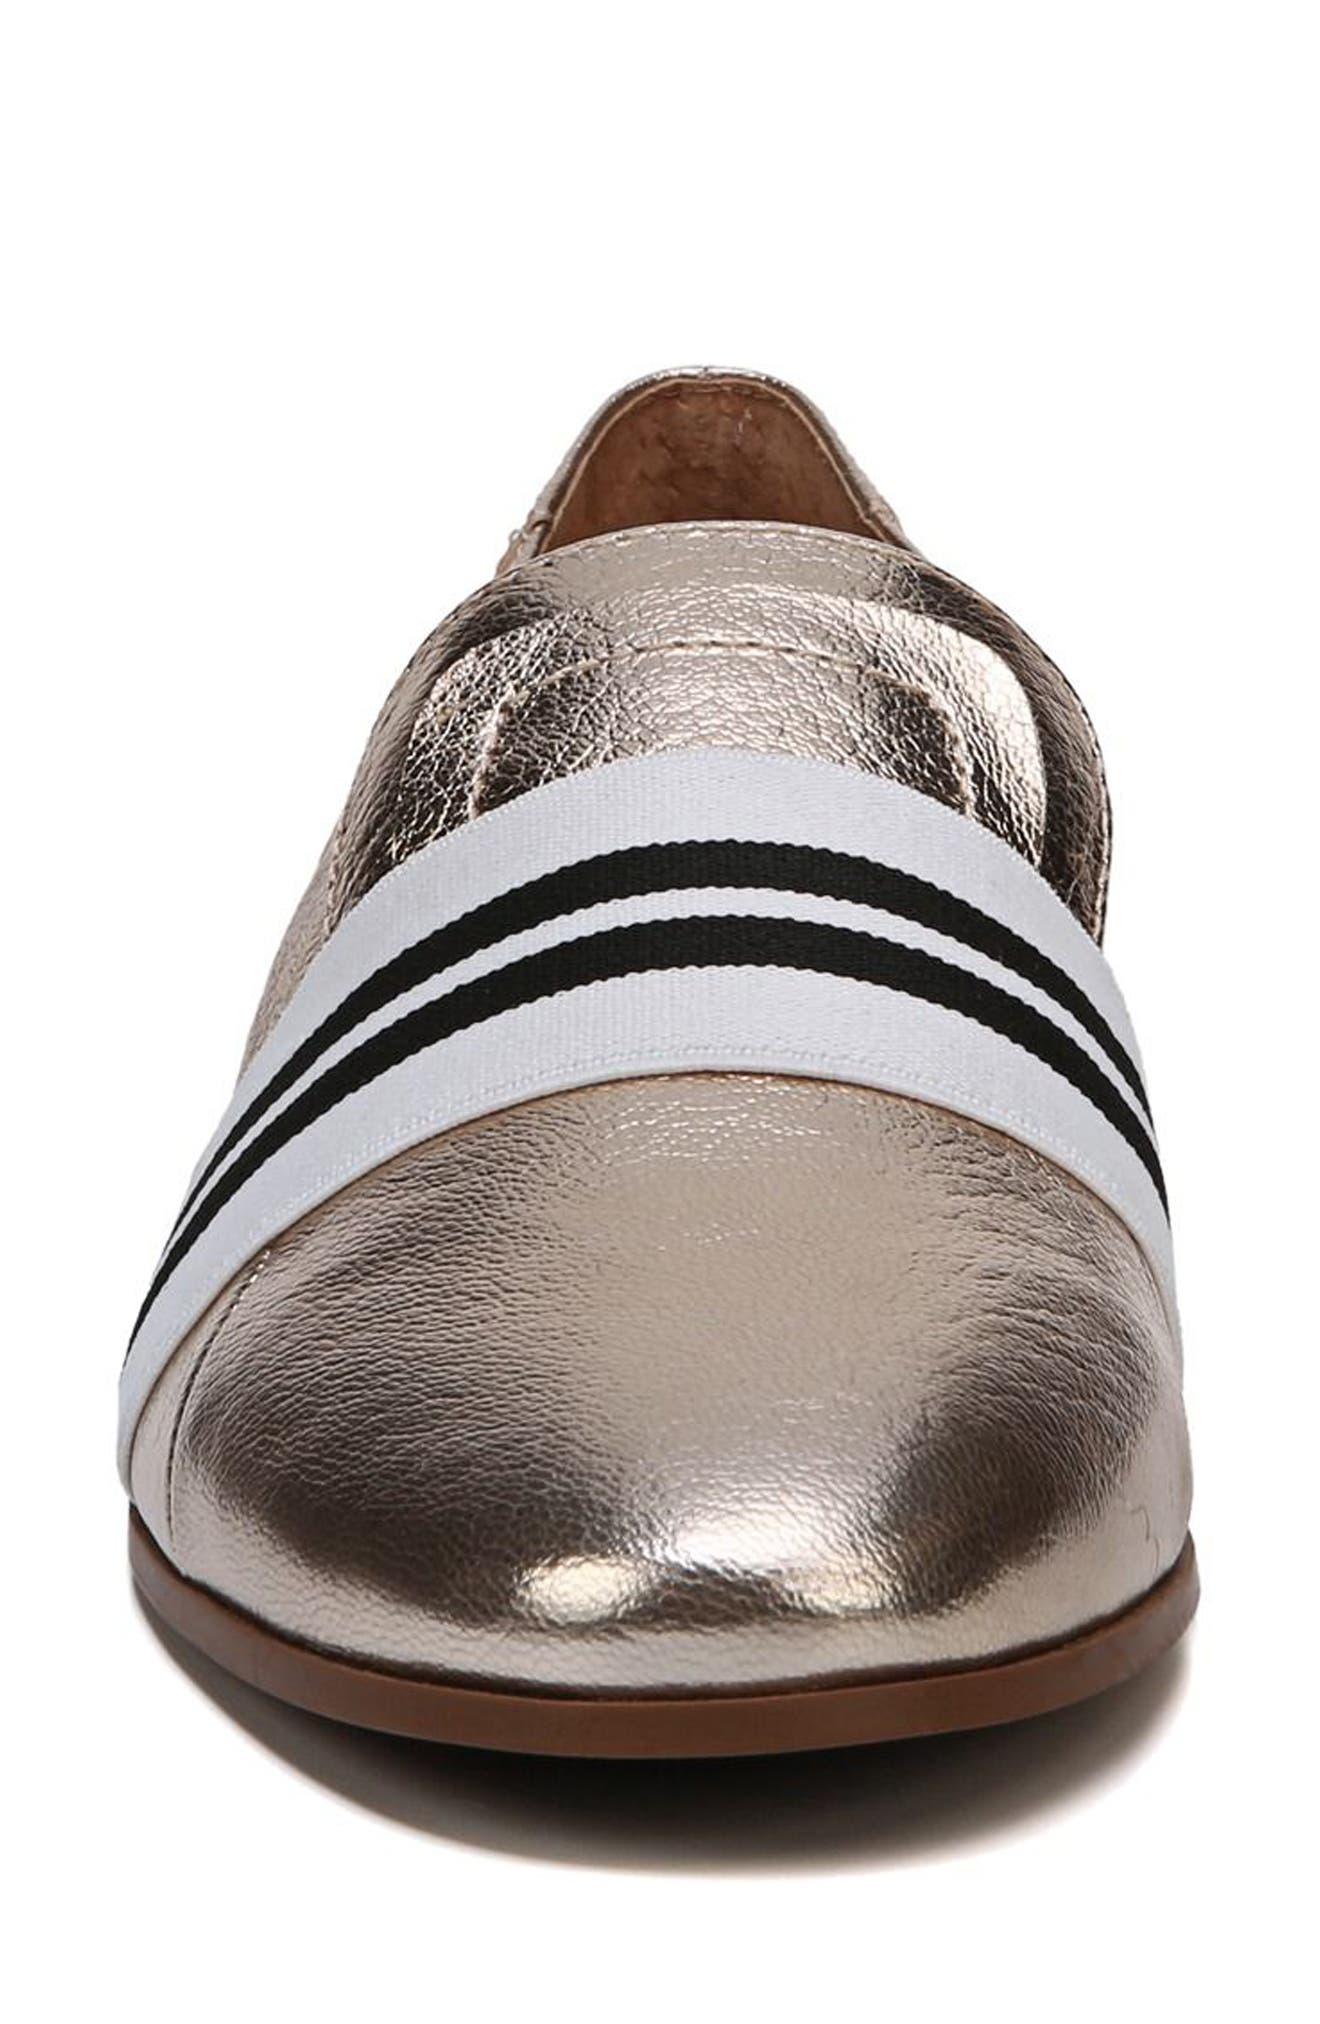 Odyssey Loafer,                             Alternate thumbnail 4, color,                             PLATINO LEATHER